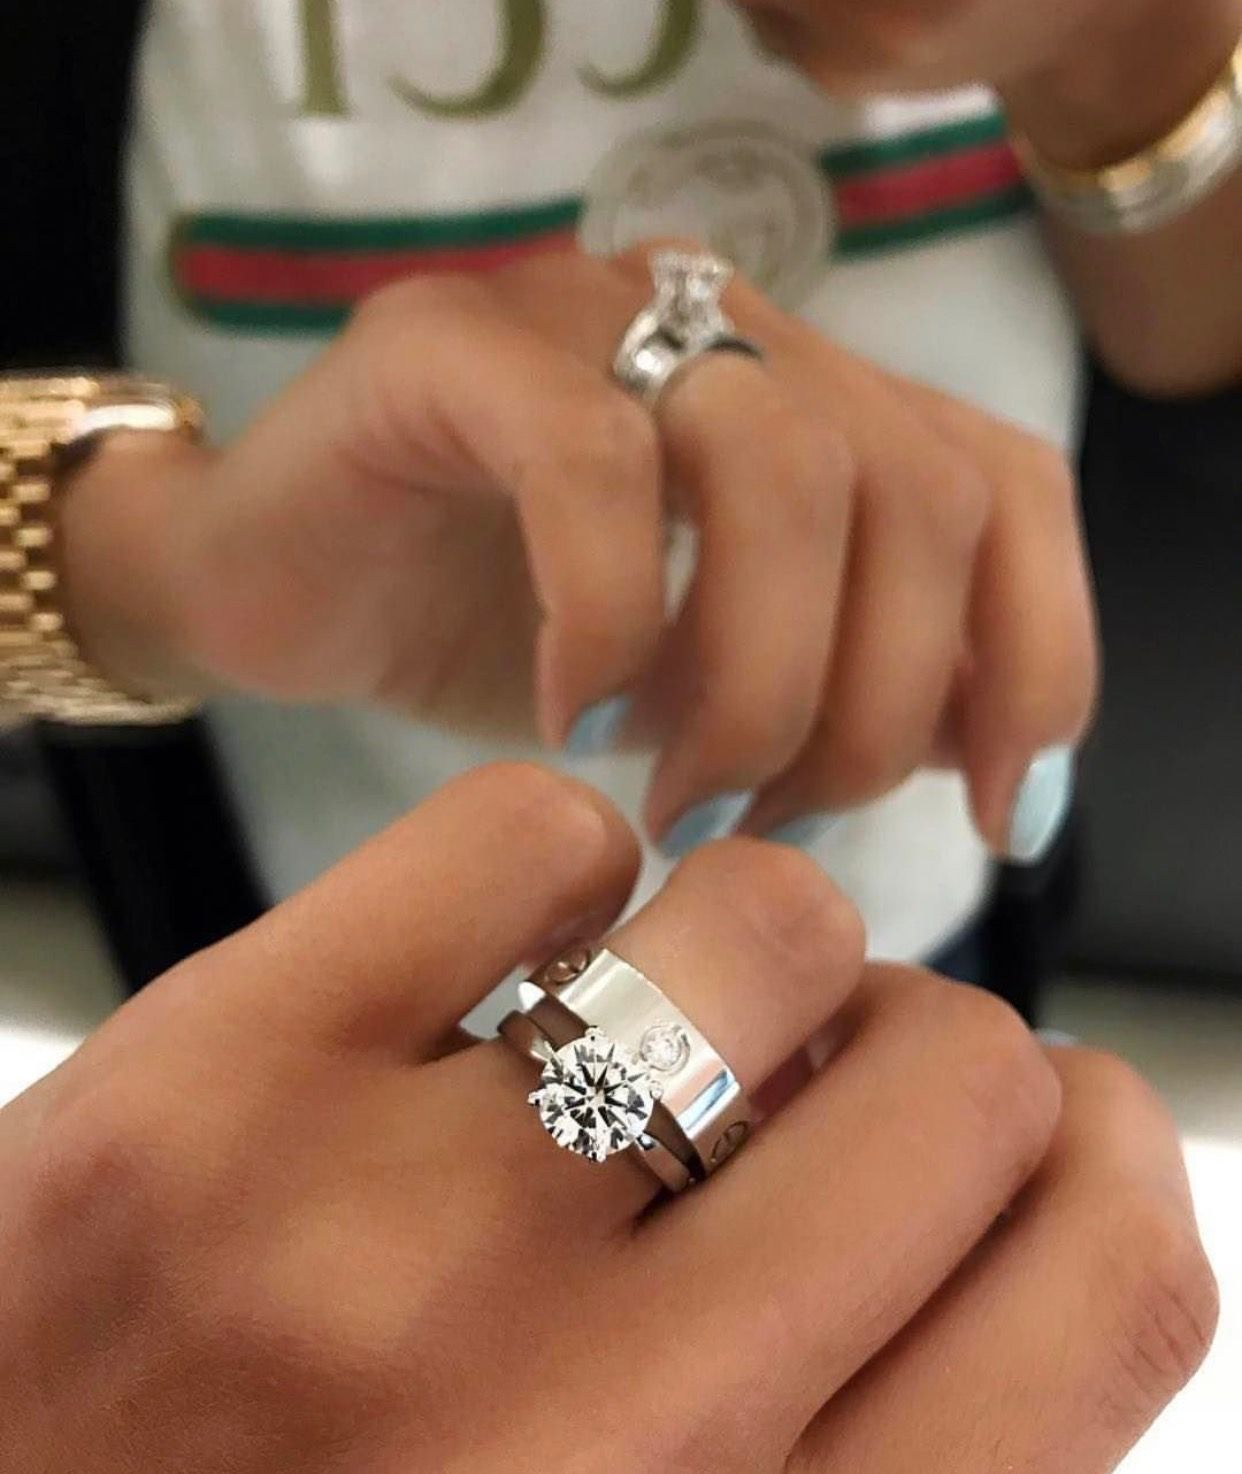 White Gold Solitaire Wedding Ring With A Cartier Love Wedding Band In 2020 Cartier Wedding Rings Cartier Love Ring Love Ring